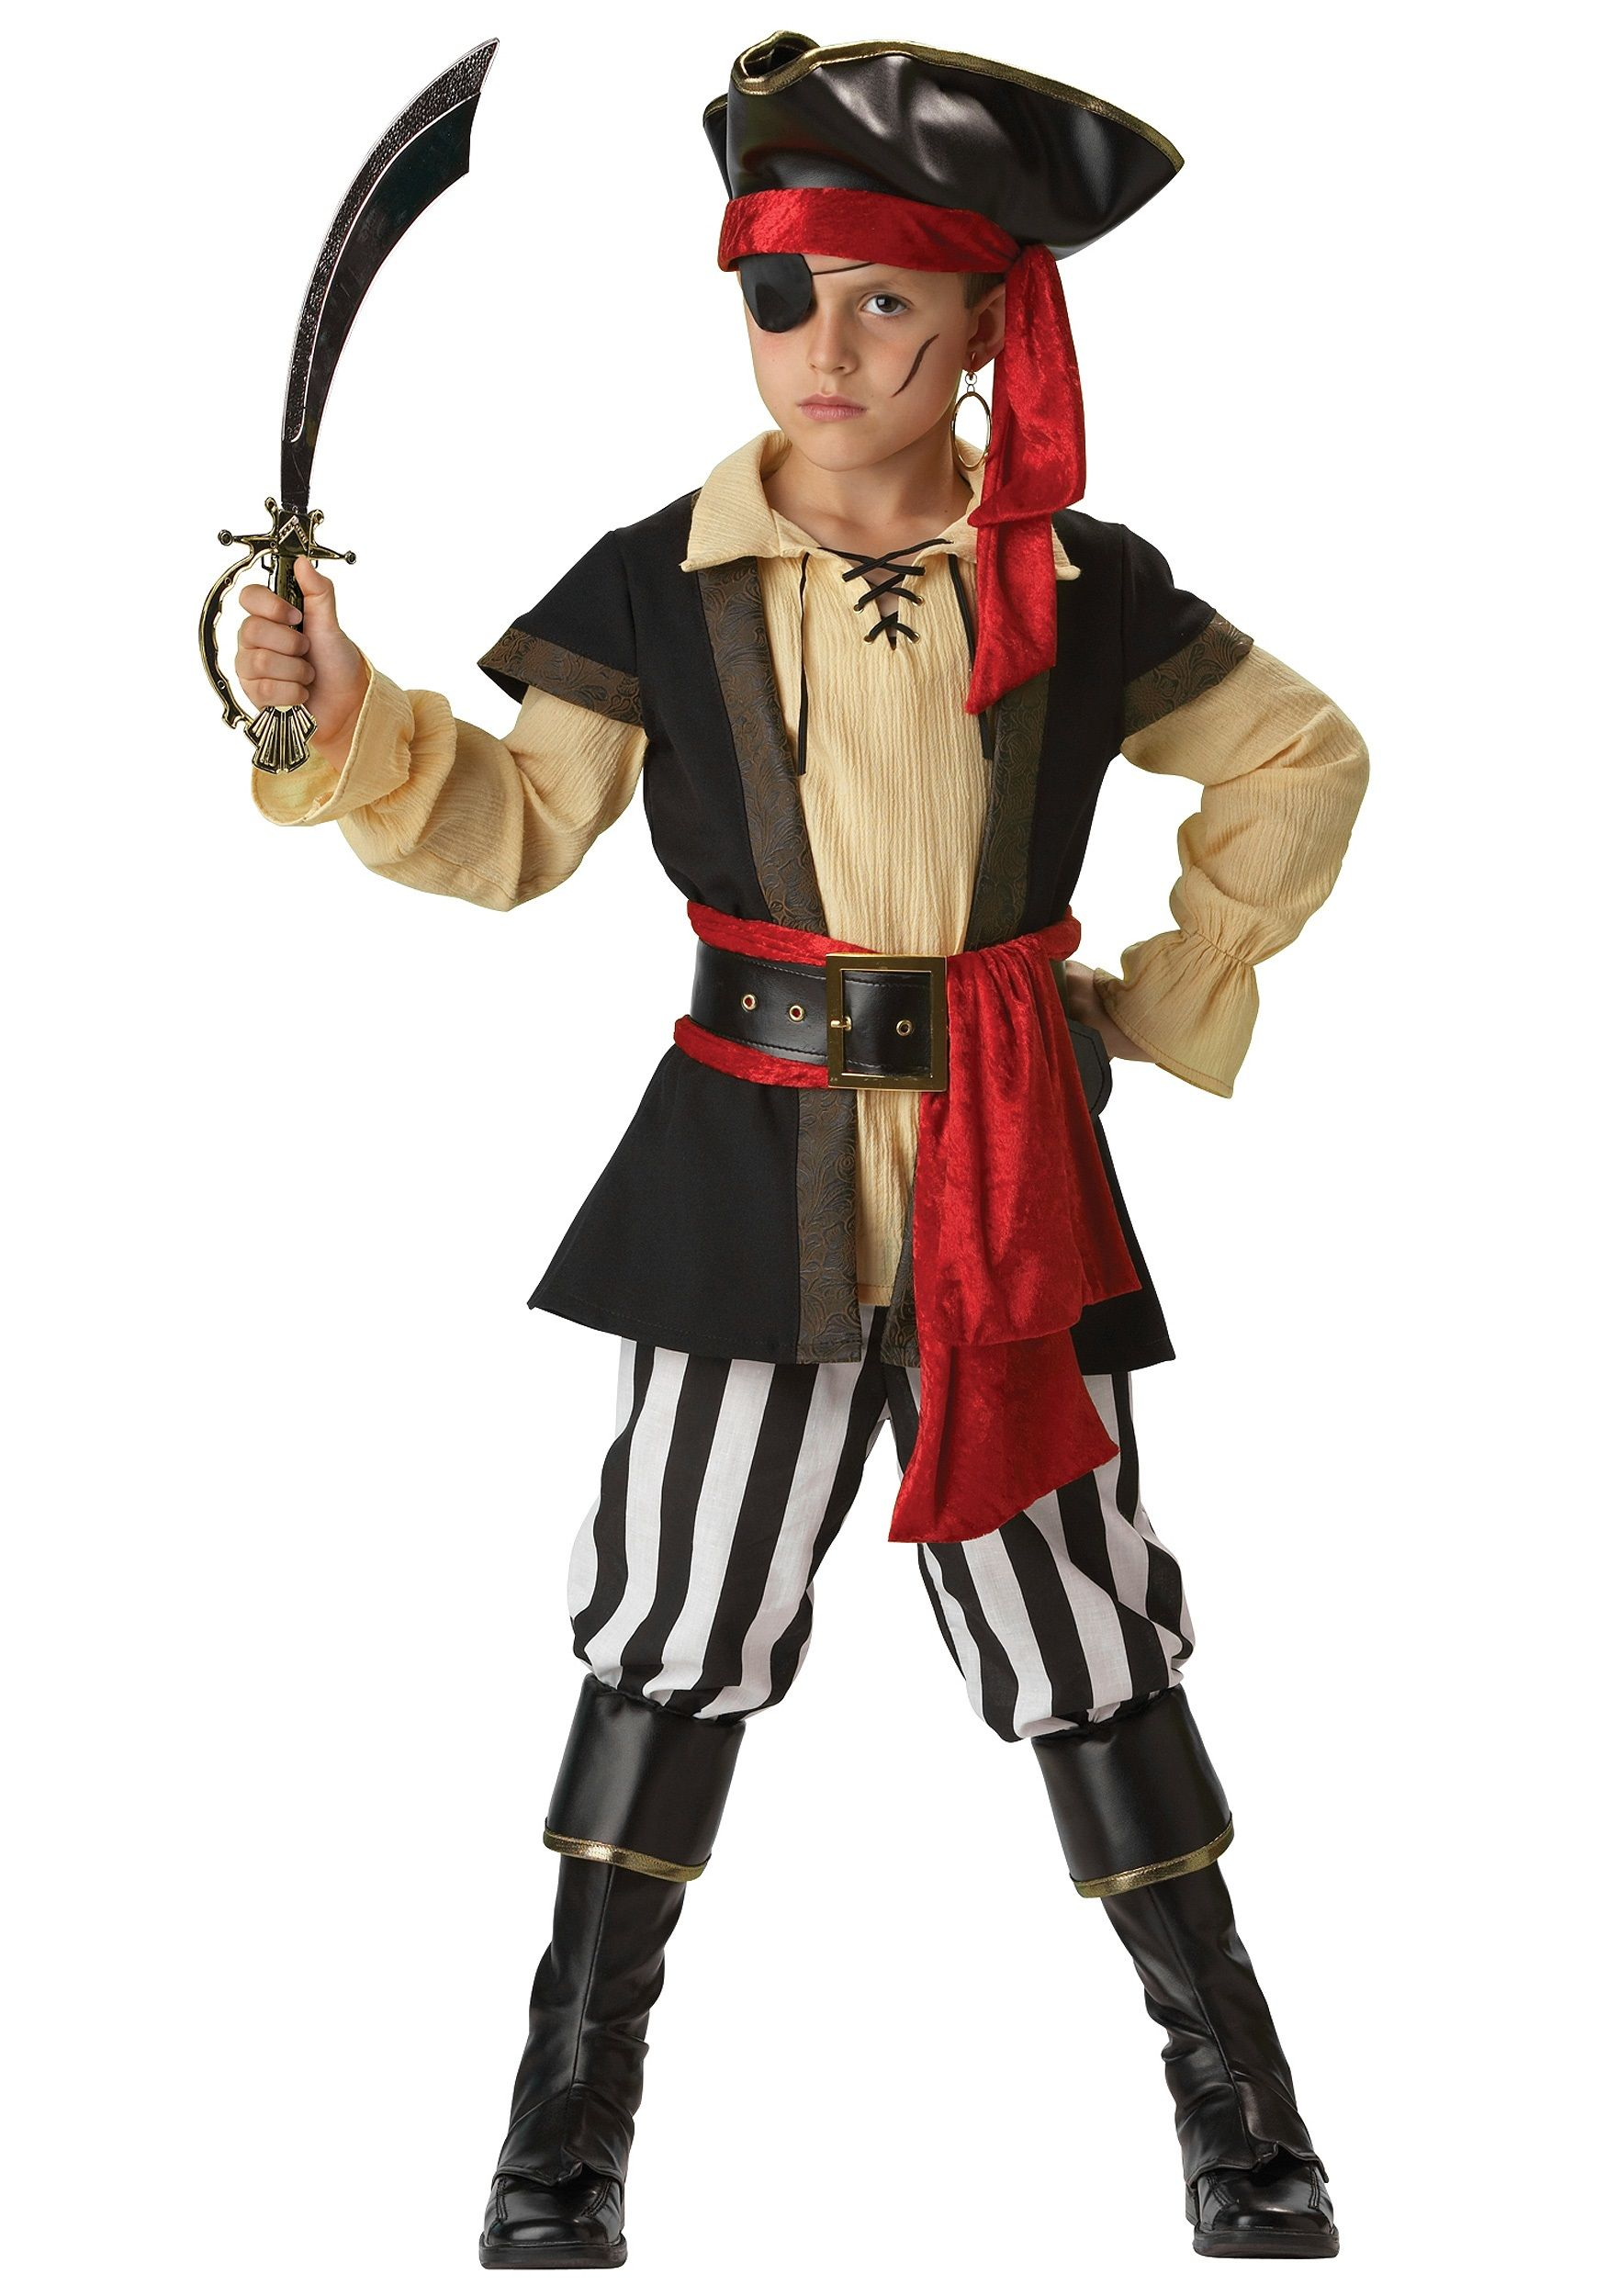 This boys scoundrel pirate costume is a fun kids pirate costume this  Halloween. Wear this pirate captain costume and become a true buccaneer!